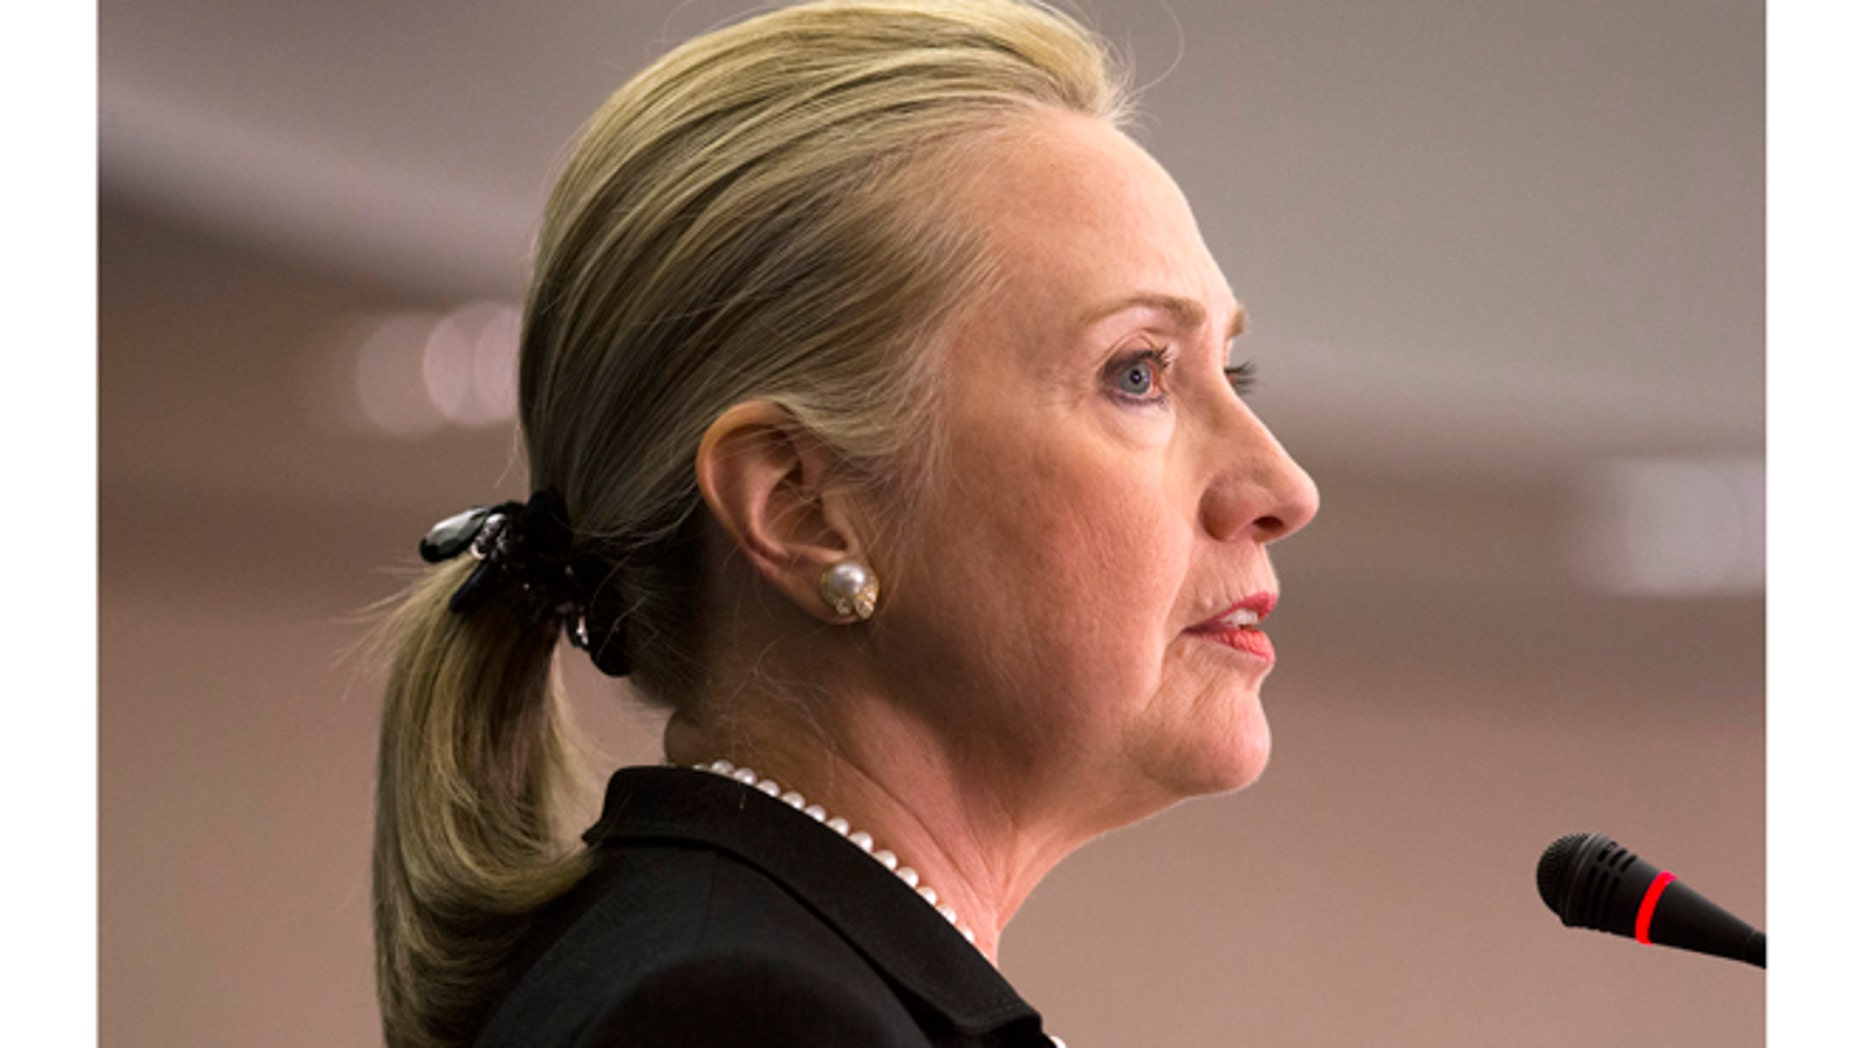 Secretary of State Hillary Rodham Clinton says the United States must continue sending diplomats and aid workers to the Arab world's emerging democracies, despite last month's deadly attack in Libya, during a speech at the Center for Strategic and International Studies in Washington, Friday, Oct. 12, 2012. (AP Photo/J. Scott Applewhite)